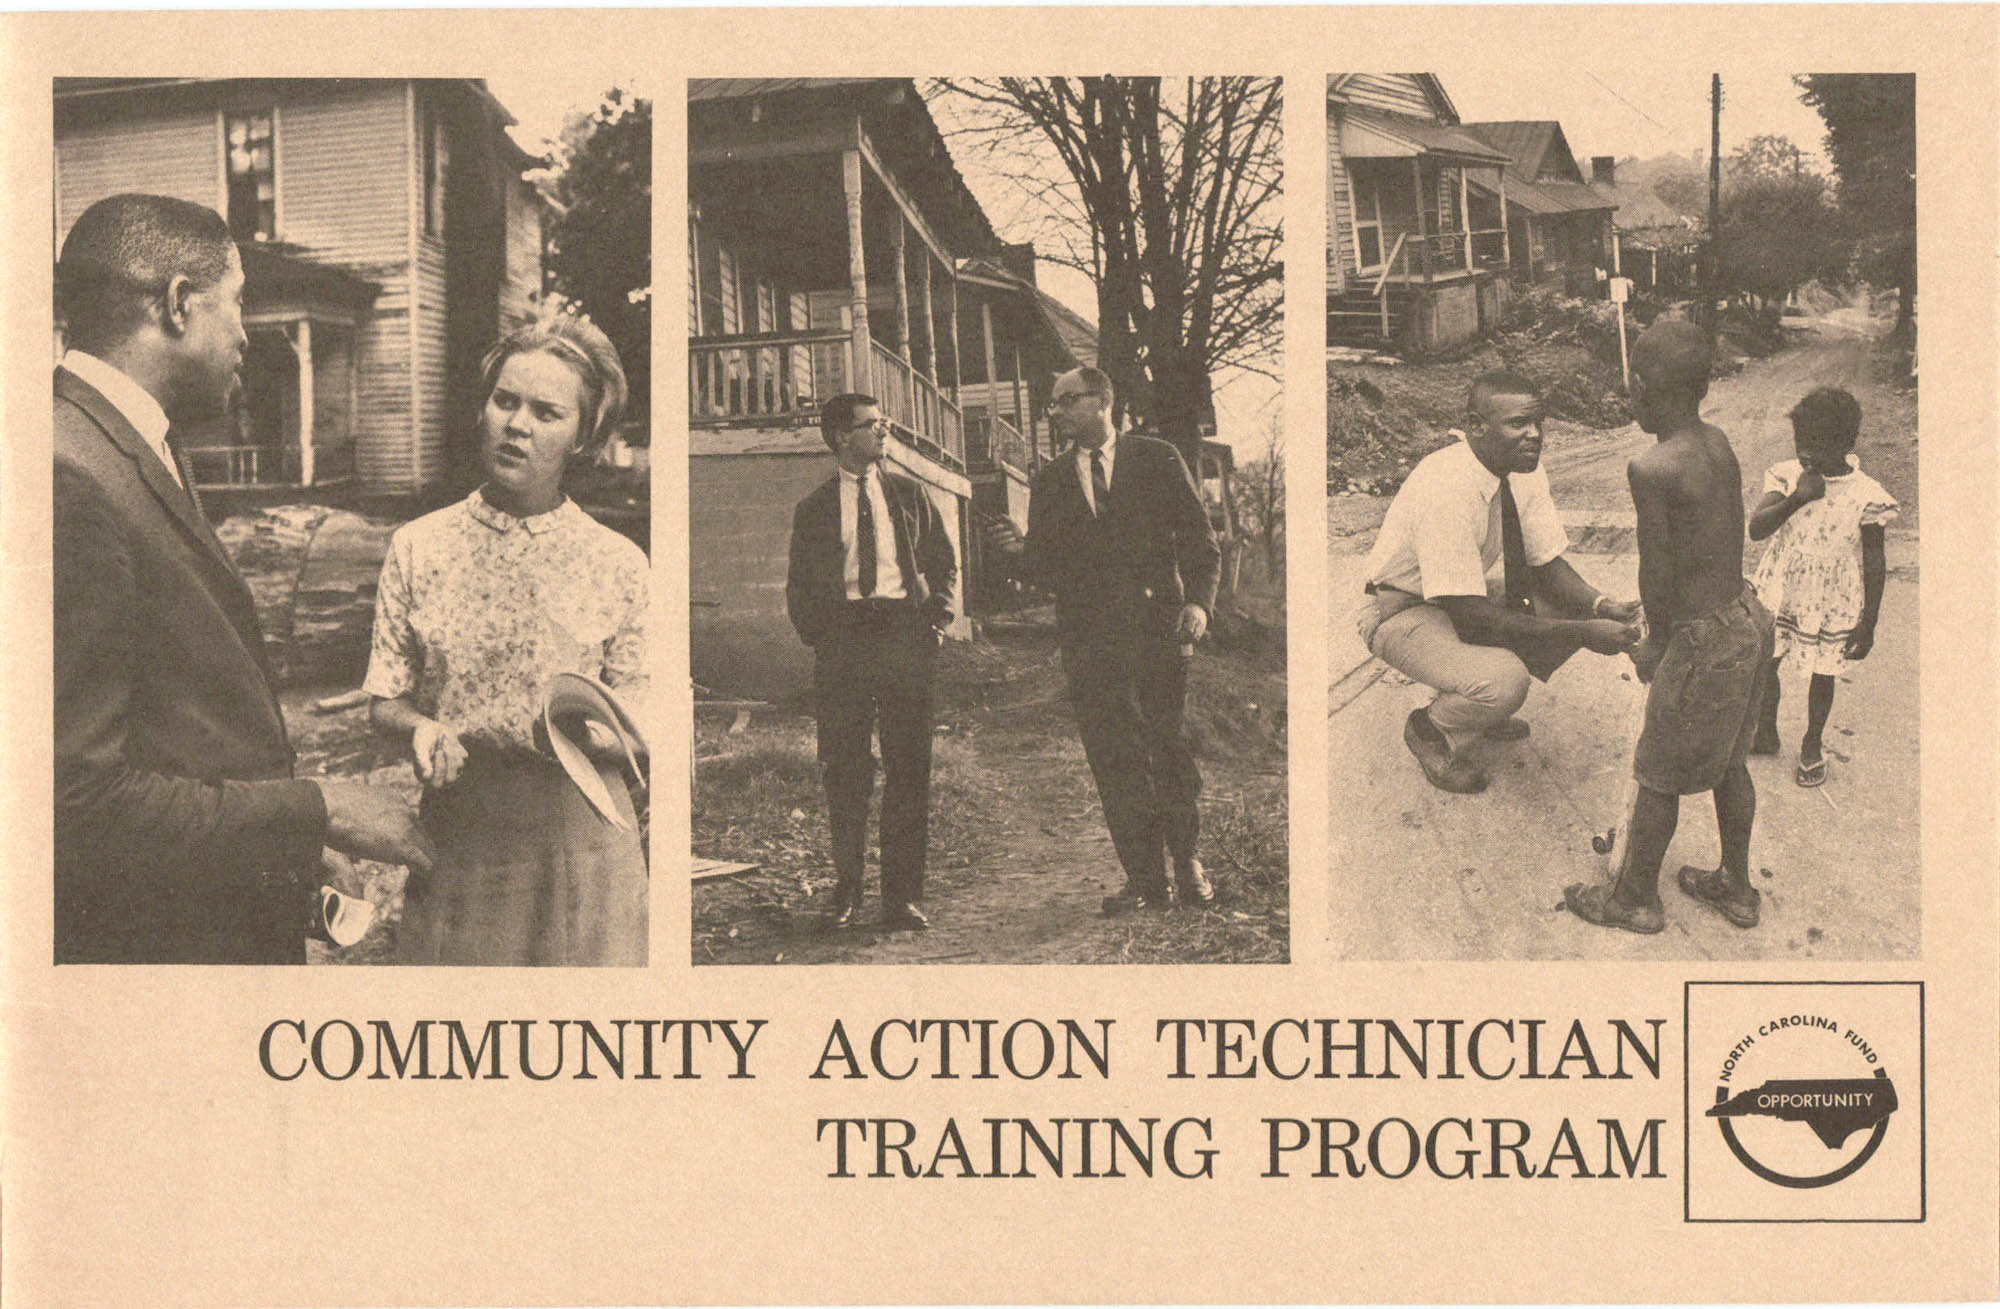 Community Action Technician Training Program